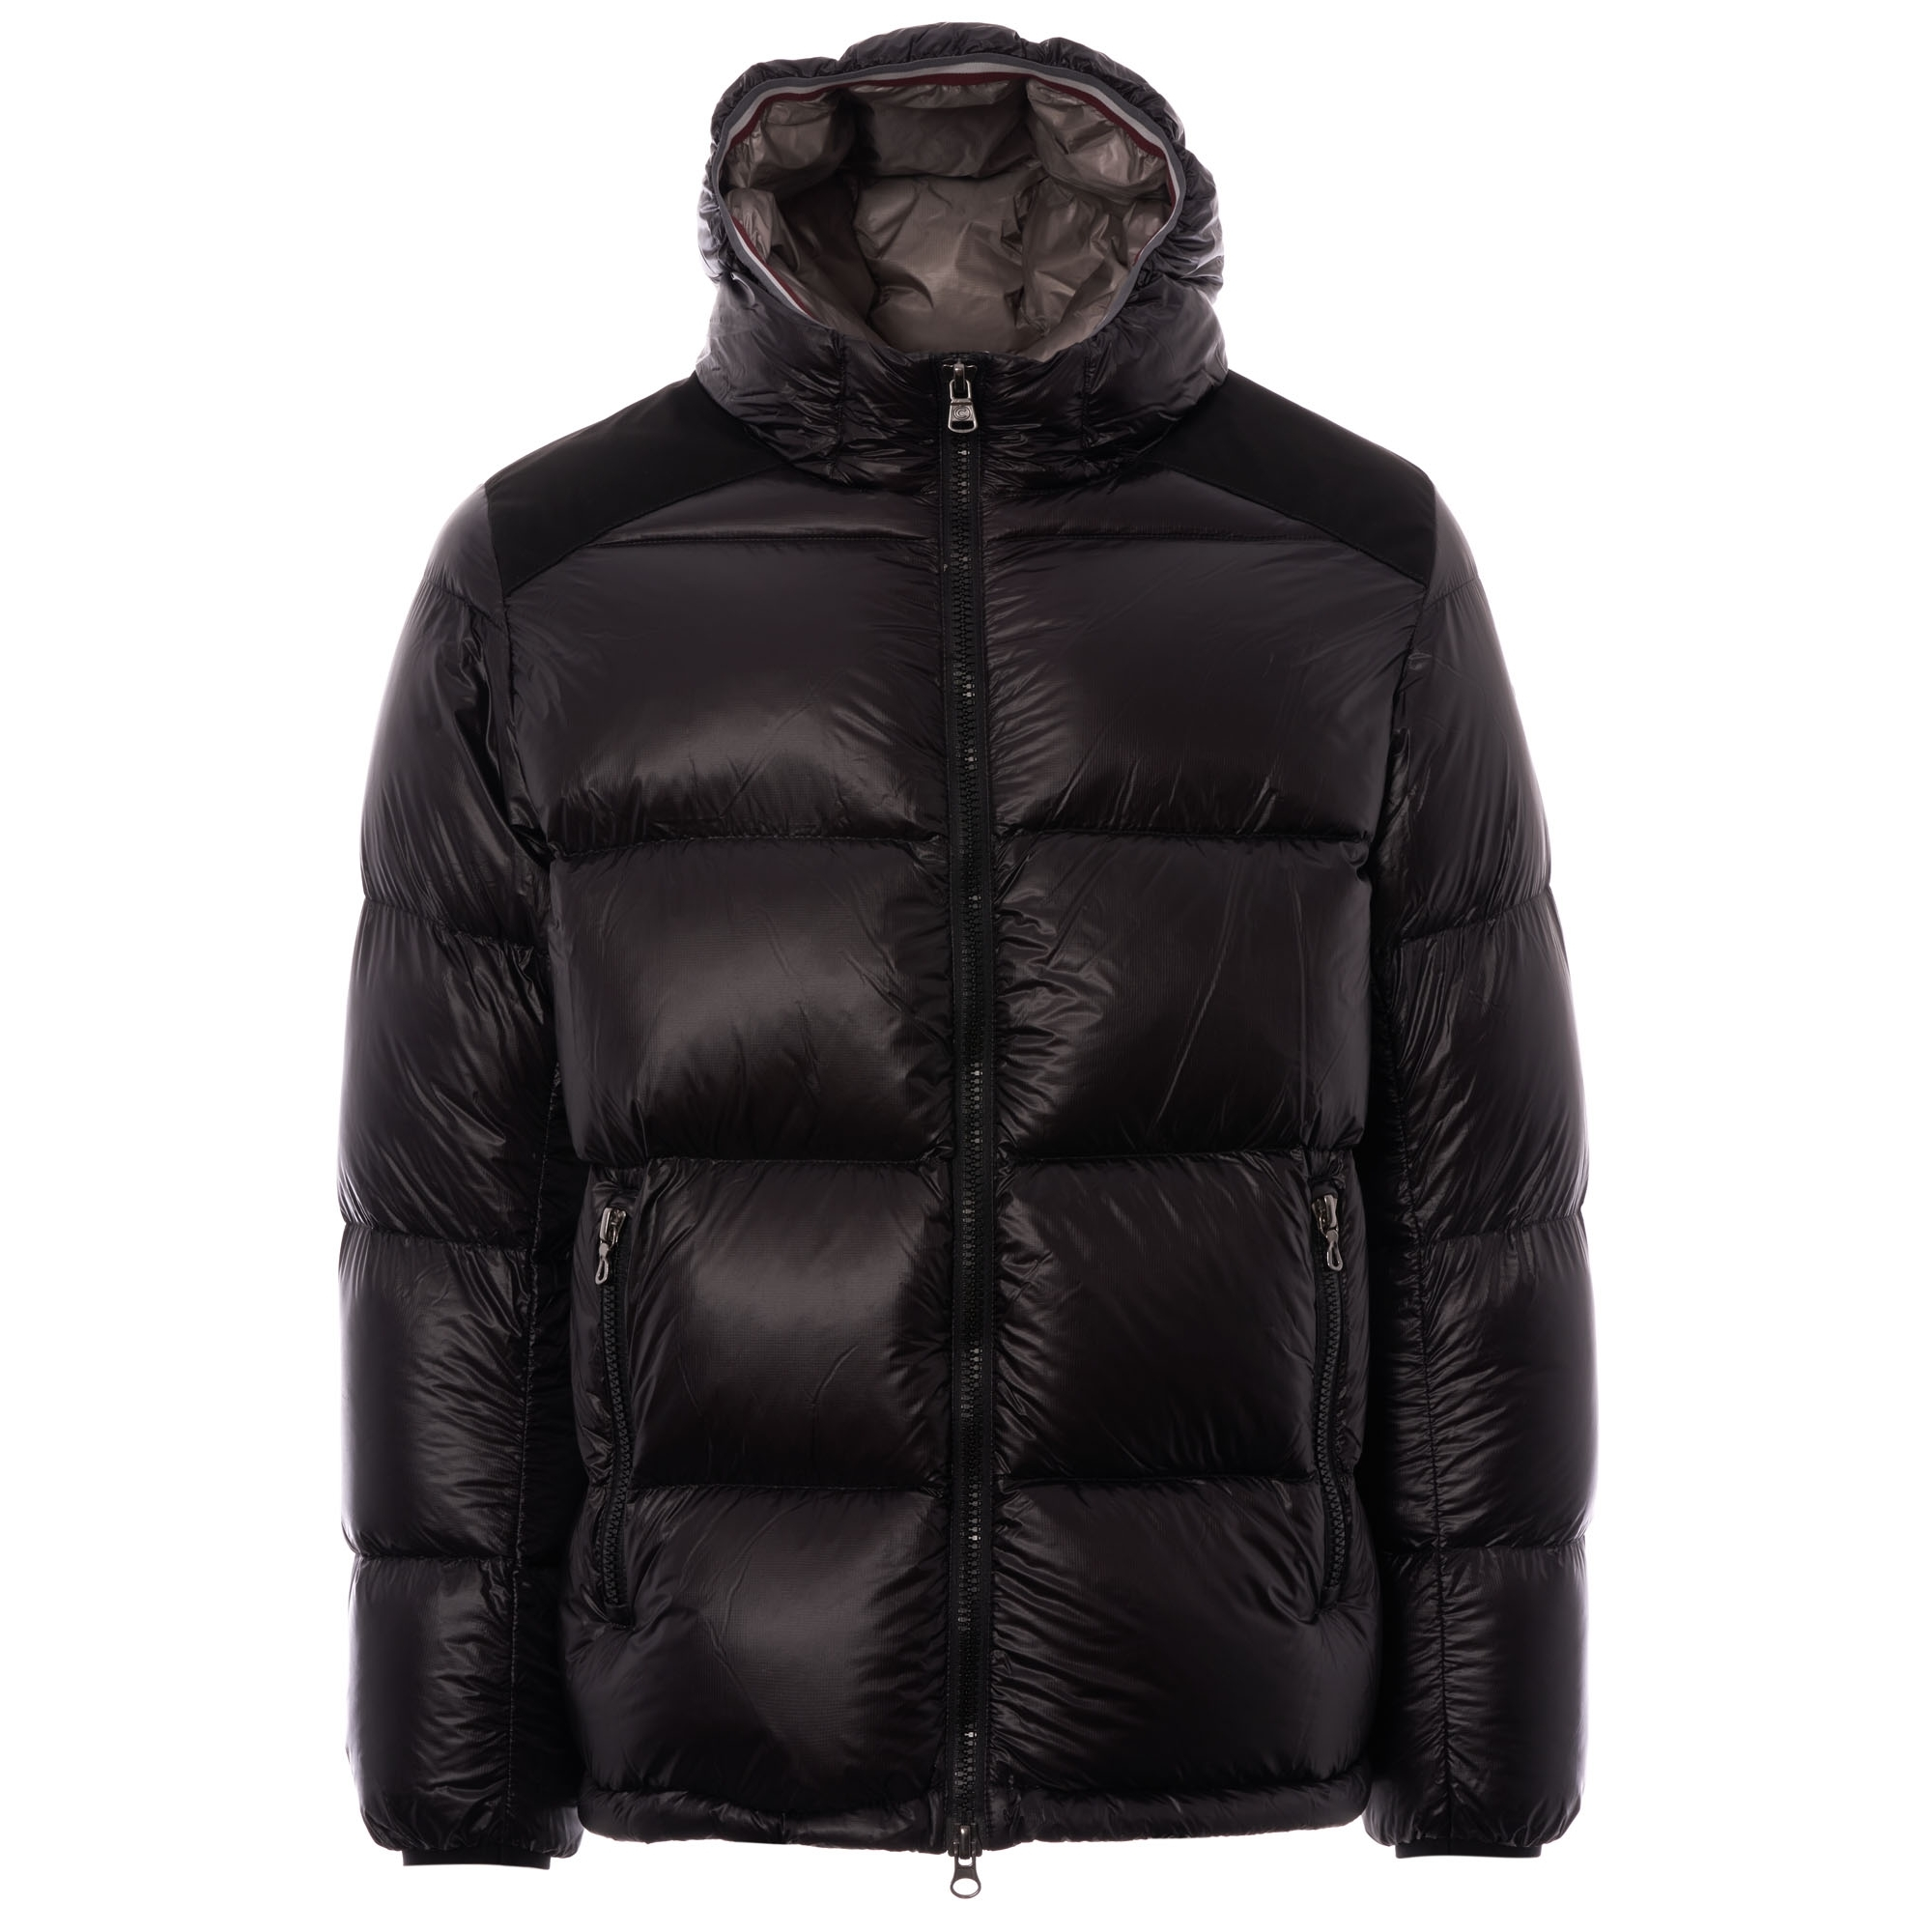 02be2429cd0 Colmar Originals Down Jacket